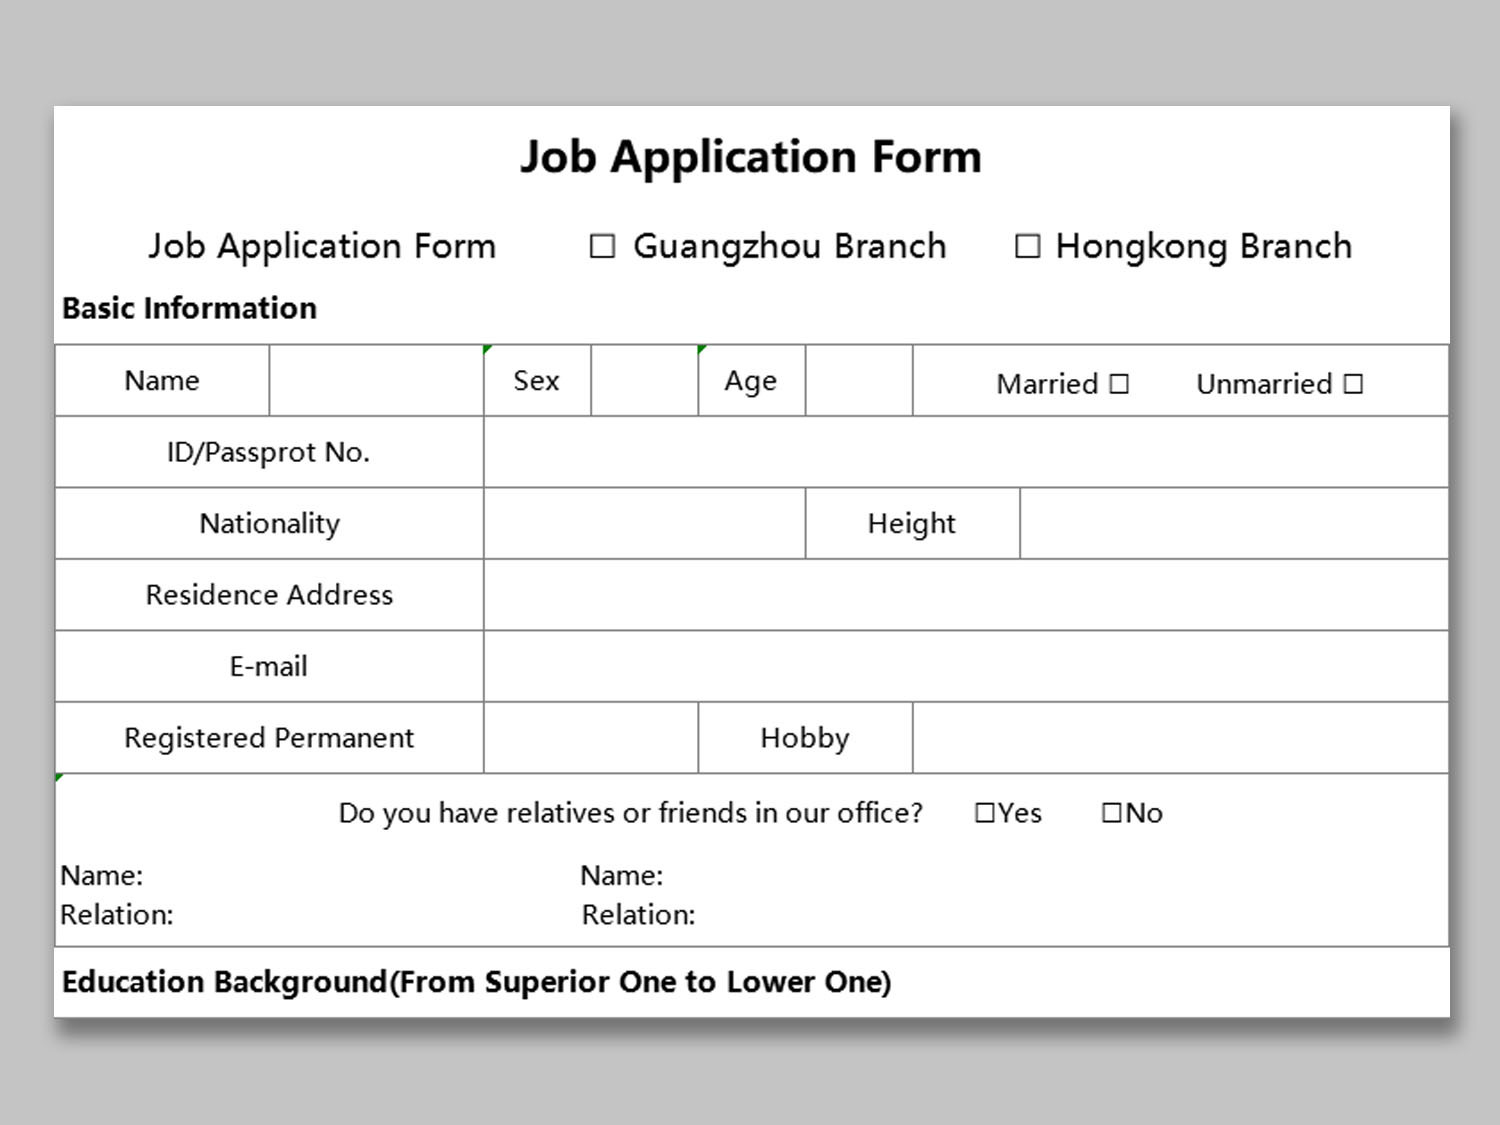 Employee Application Form Template Free from d4z1onkegyrs5.cloudfront.net